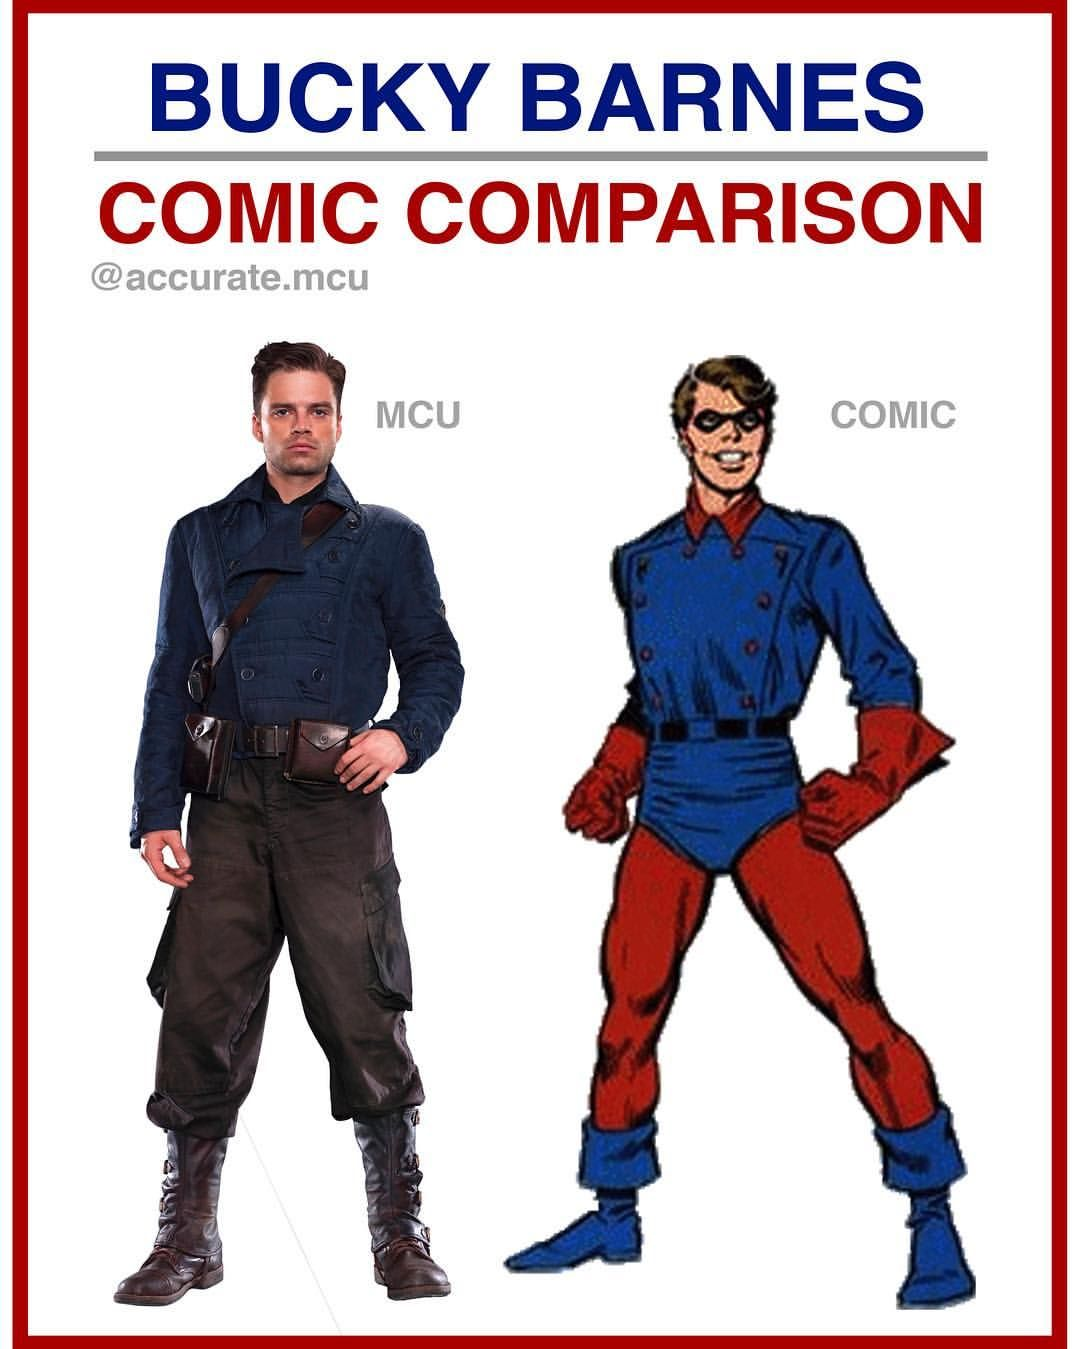 • BUCKY BARNES - COMIC COMPARISON•  I think they did a great job with adapting the comic suit in to  - accurate.mcu